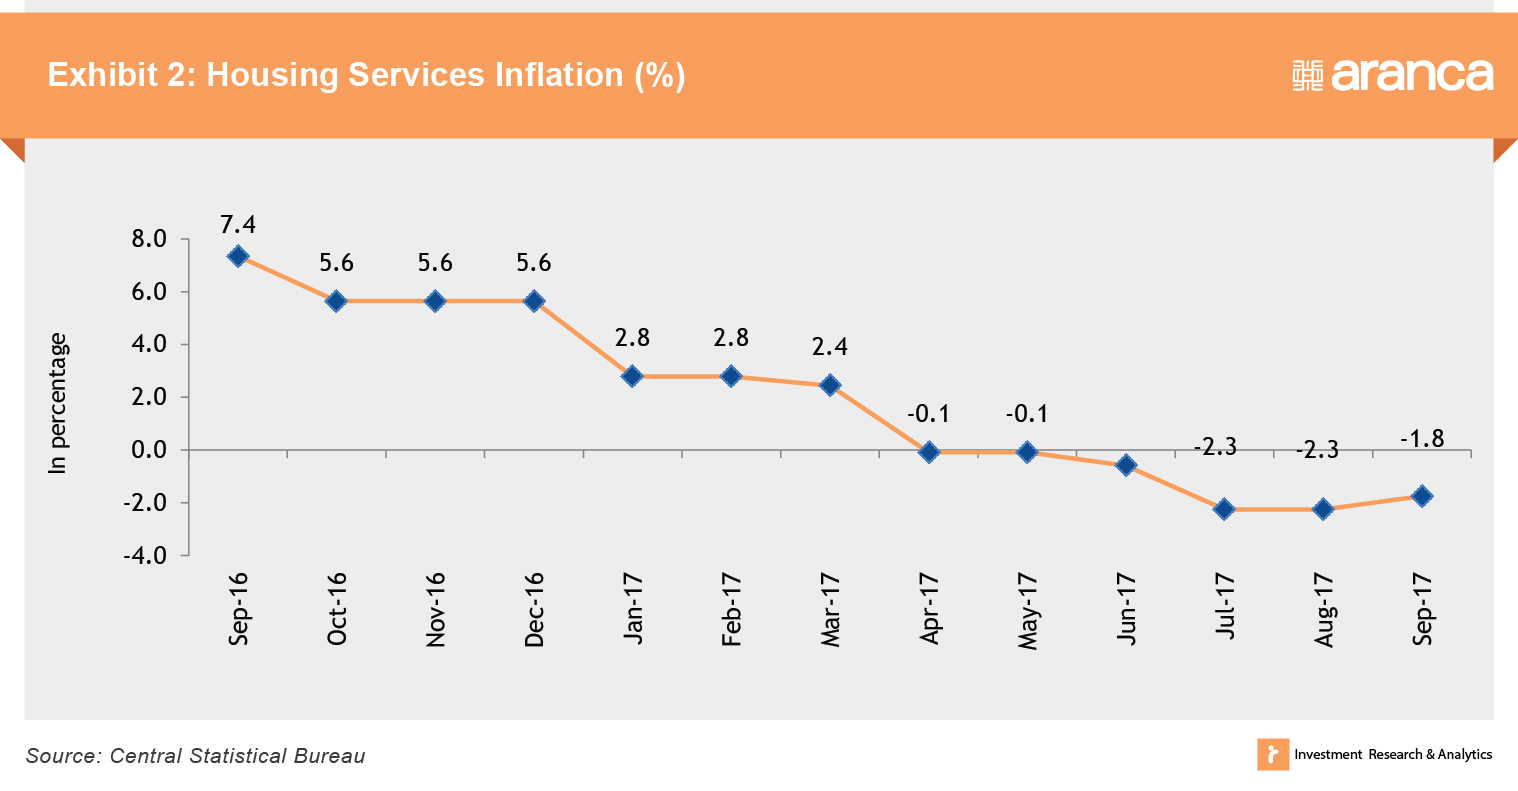 Kuwait Housing Services Inflation (%)